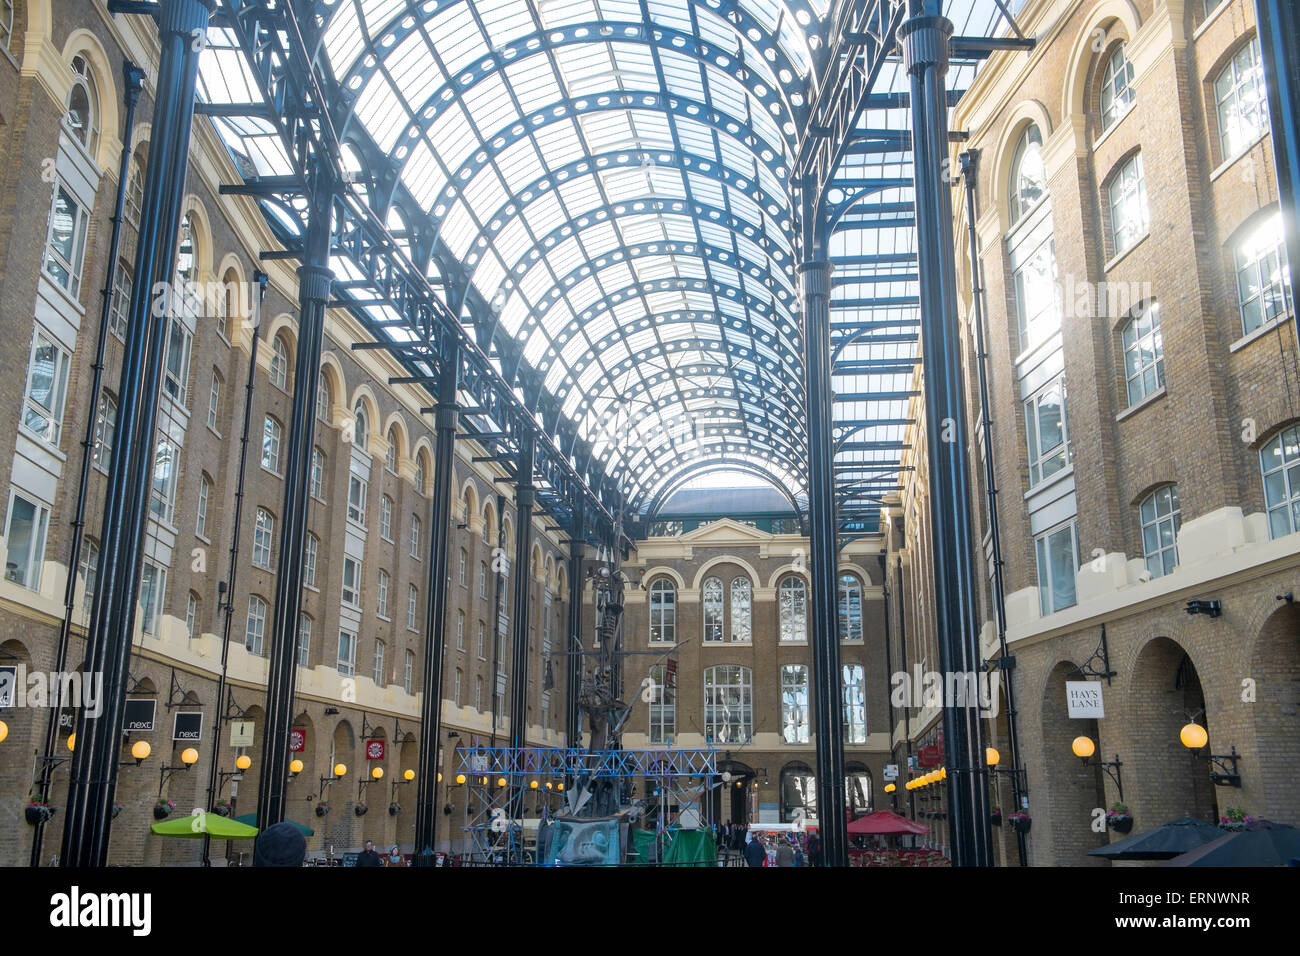 Hays Galleria Shopping Mall And Roof Structure On London South Bank,England